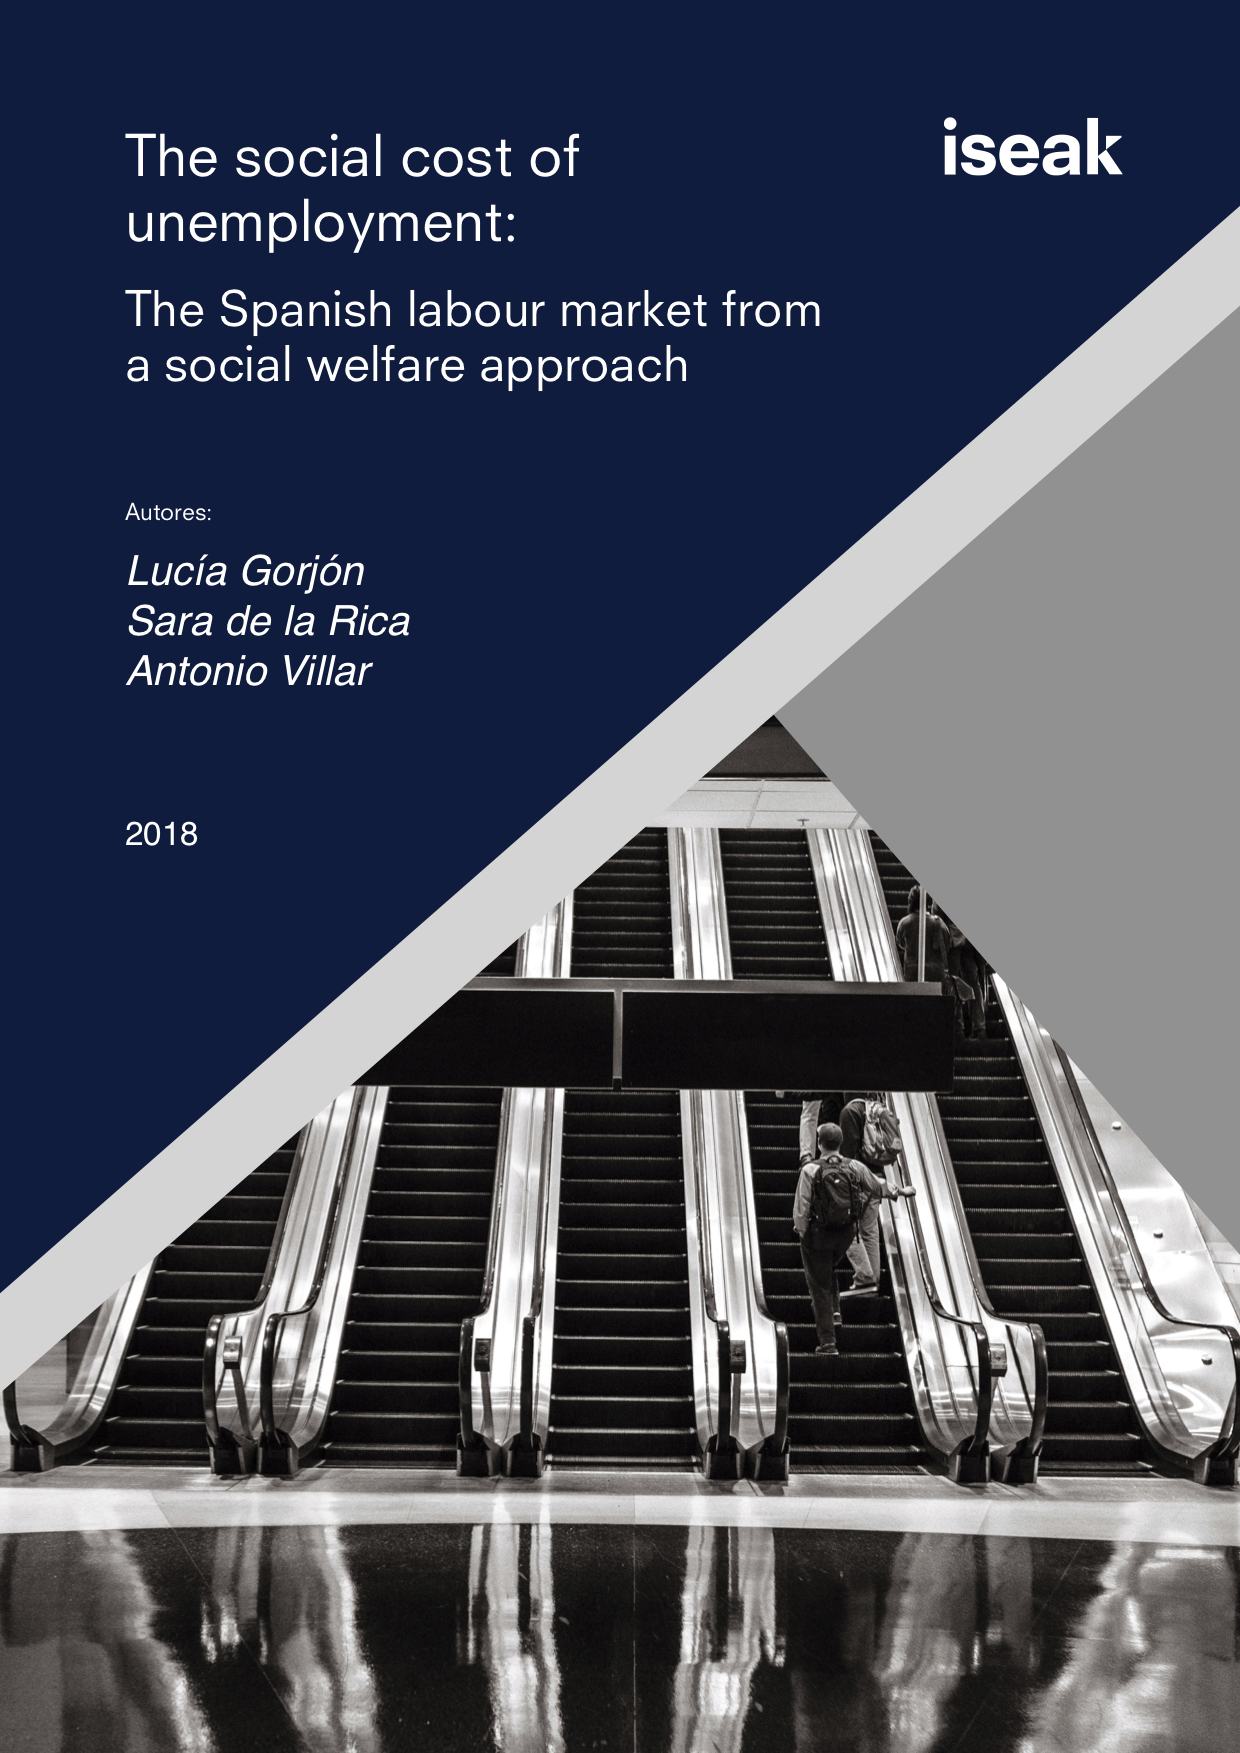 social cost of unemployment Spain; social cost of unemployment; unemployment; labour market